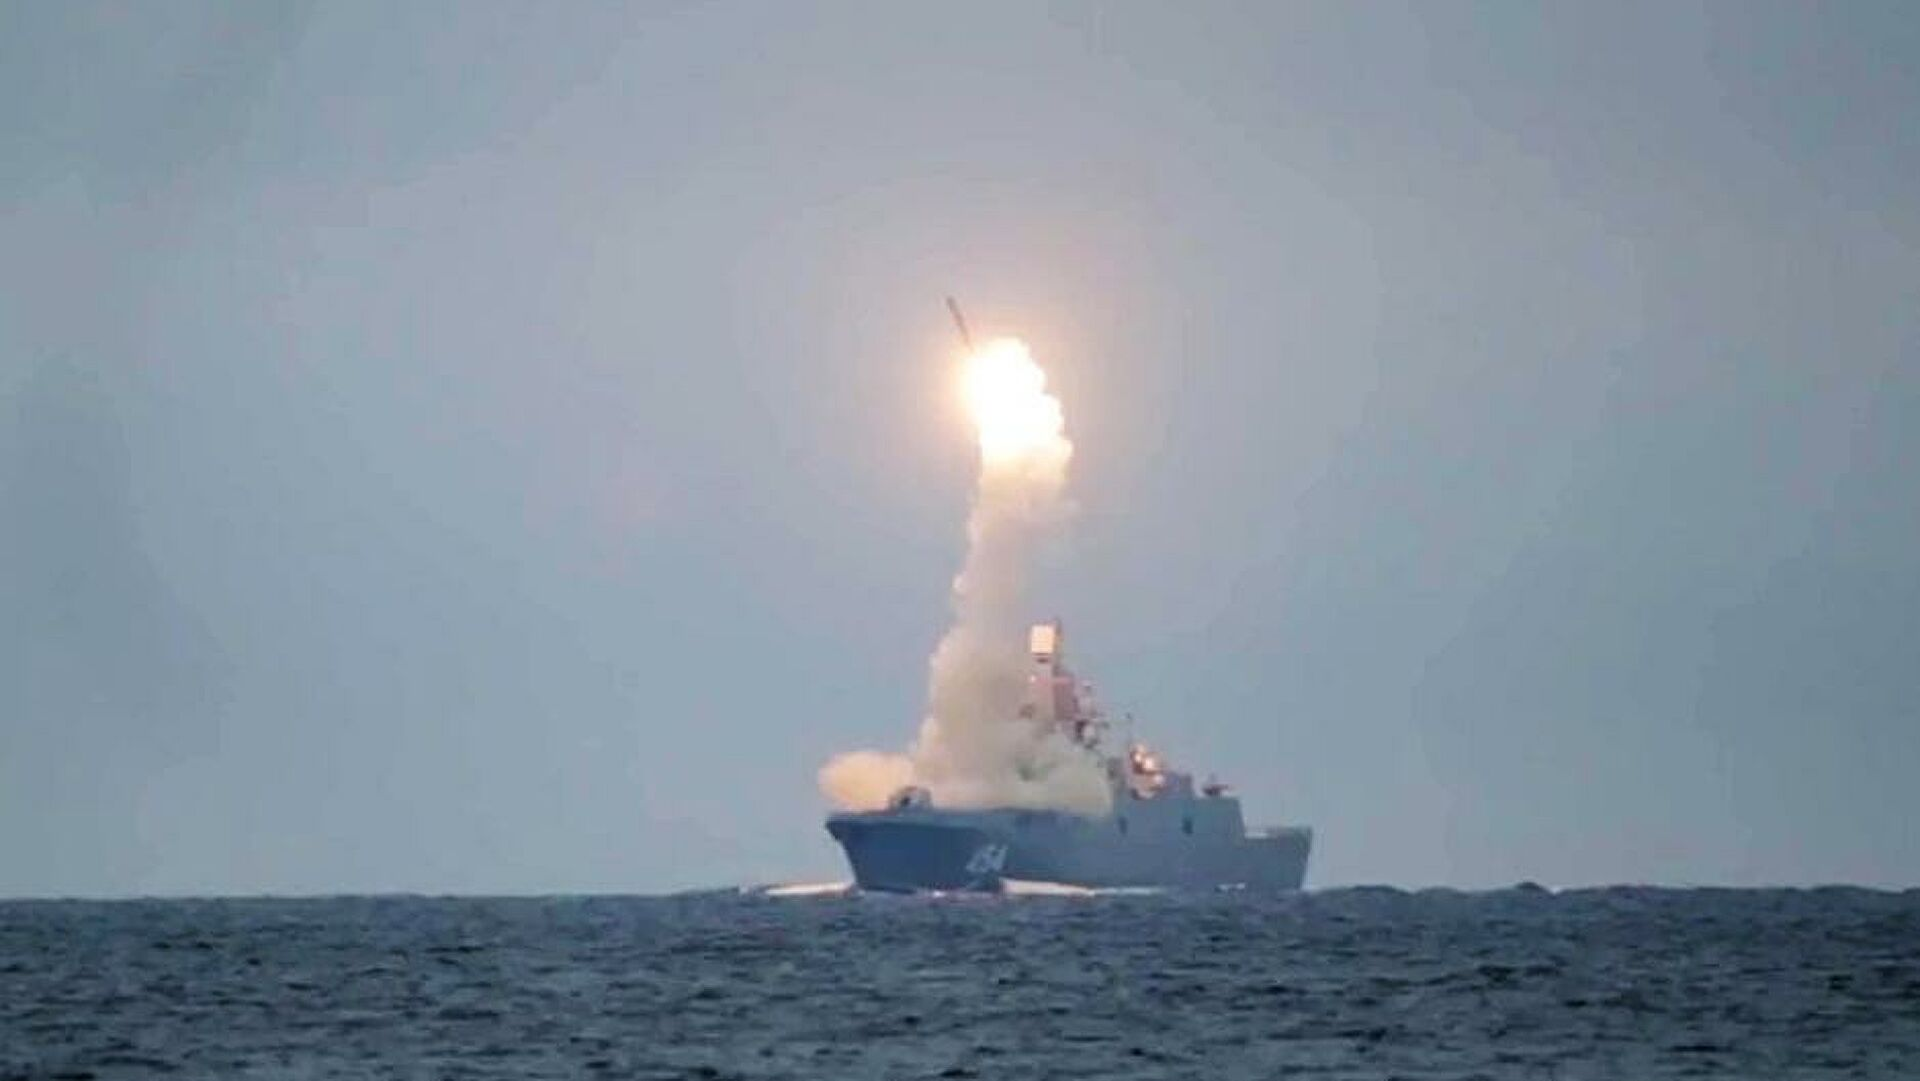 Russia's Admiral Gorshkov Frigate Successfully Strikes Ground Target With Zircon Hypersonic Missile